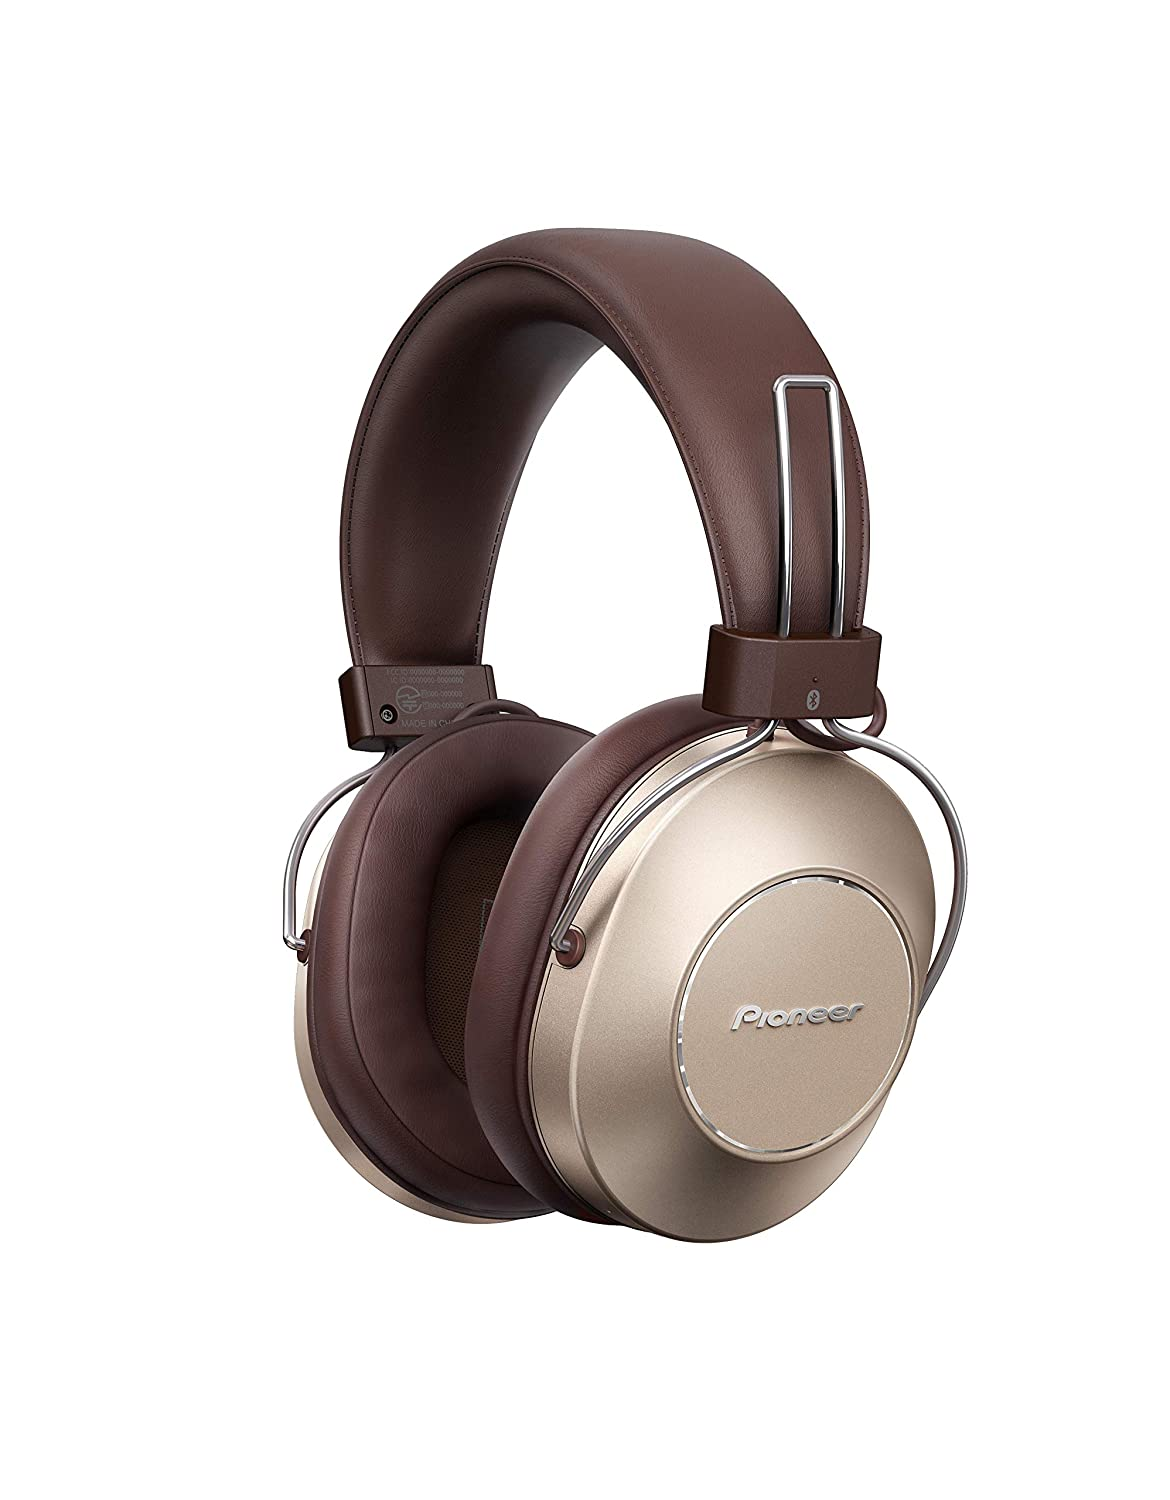 Auriculares pioneer s9 bluetooth